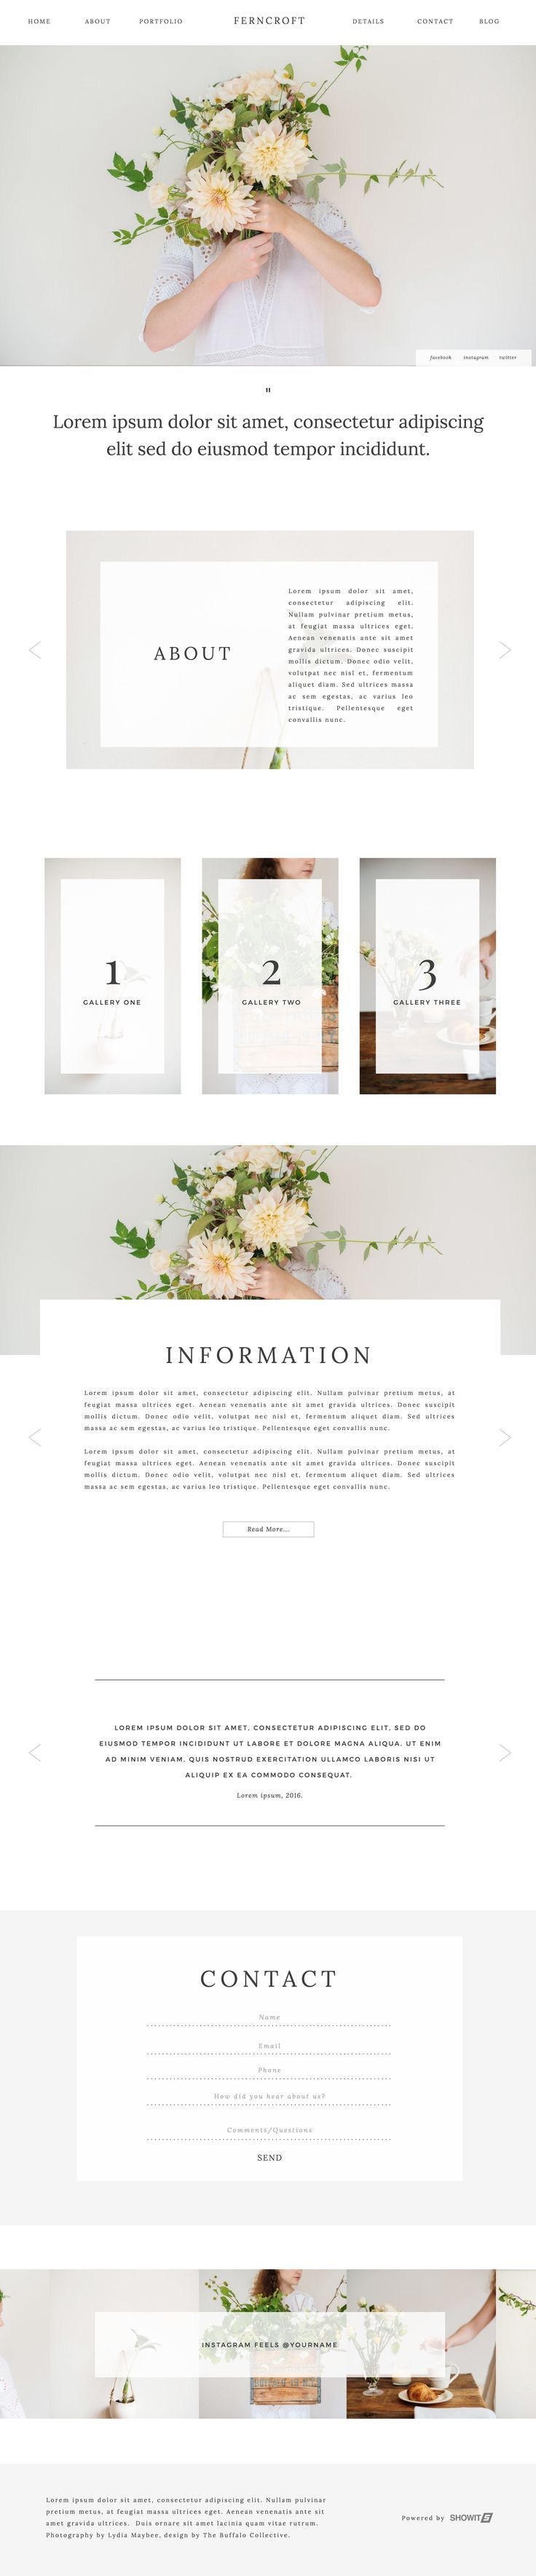 Ferncroft - Showit Free Photography Website Template